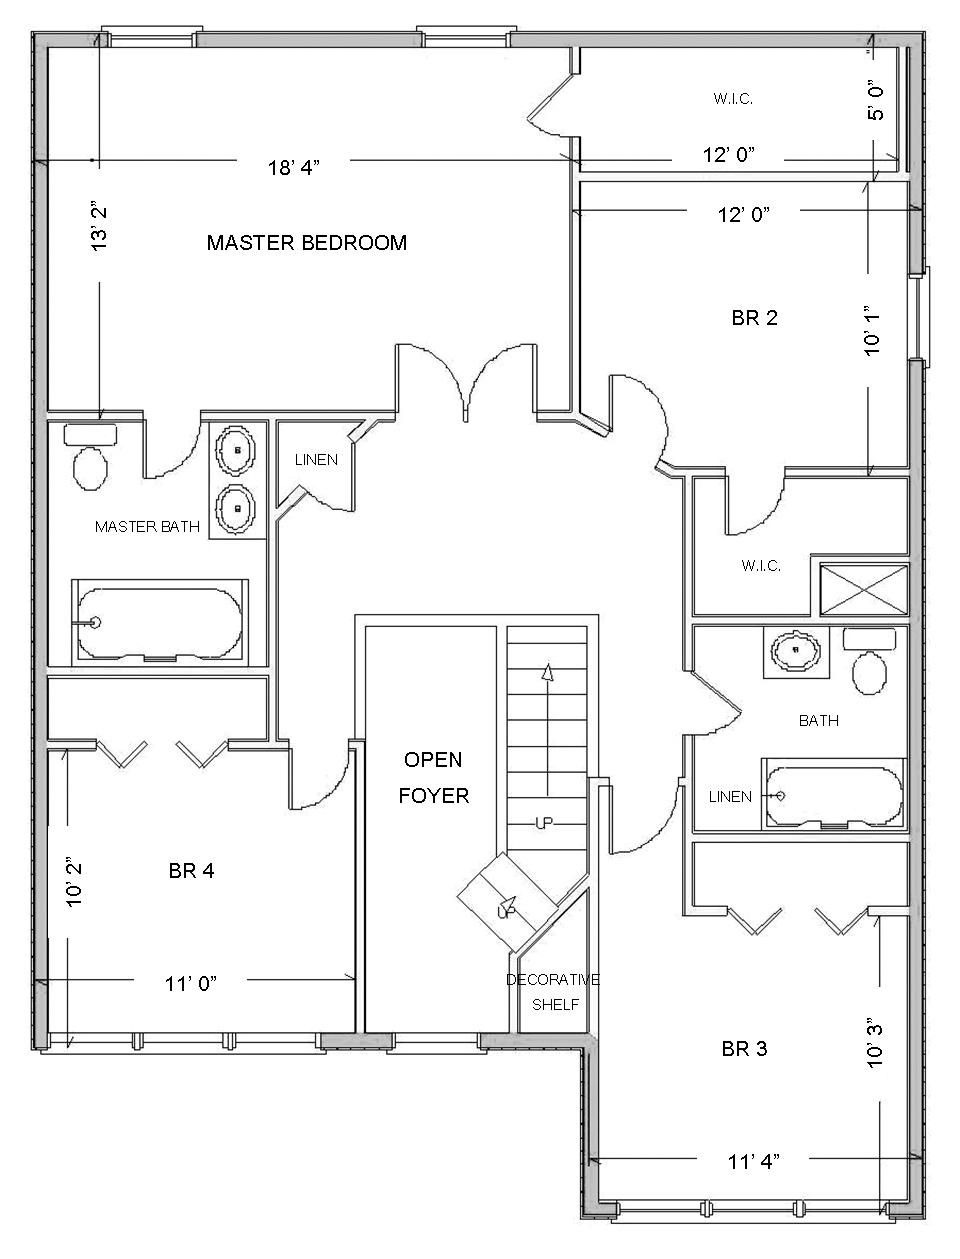 House Plans and Layouts Beautiful Digital Smart Draw Floor Plan with Smartdraw software with